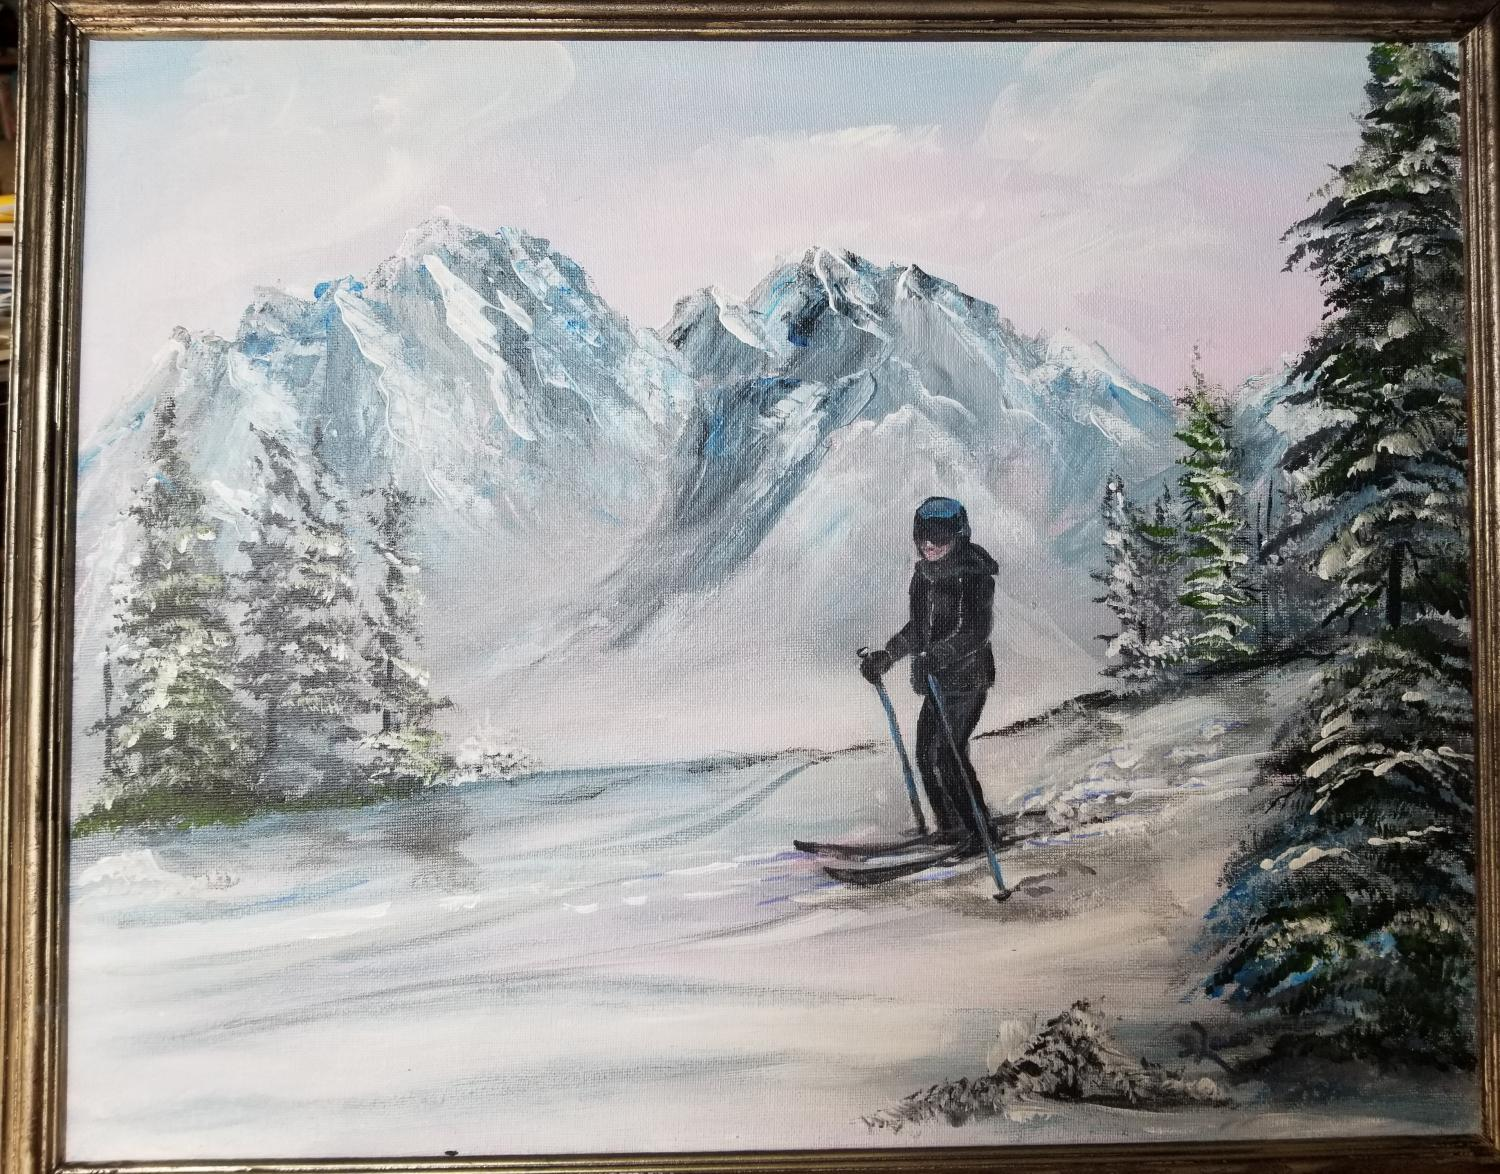 framed painting of a girl on skis in a snowy landscape